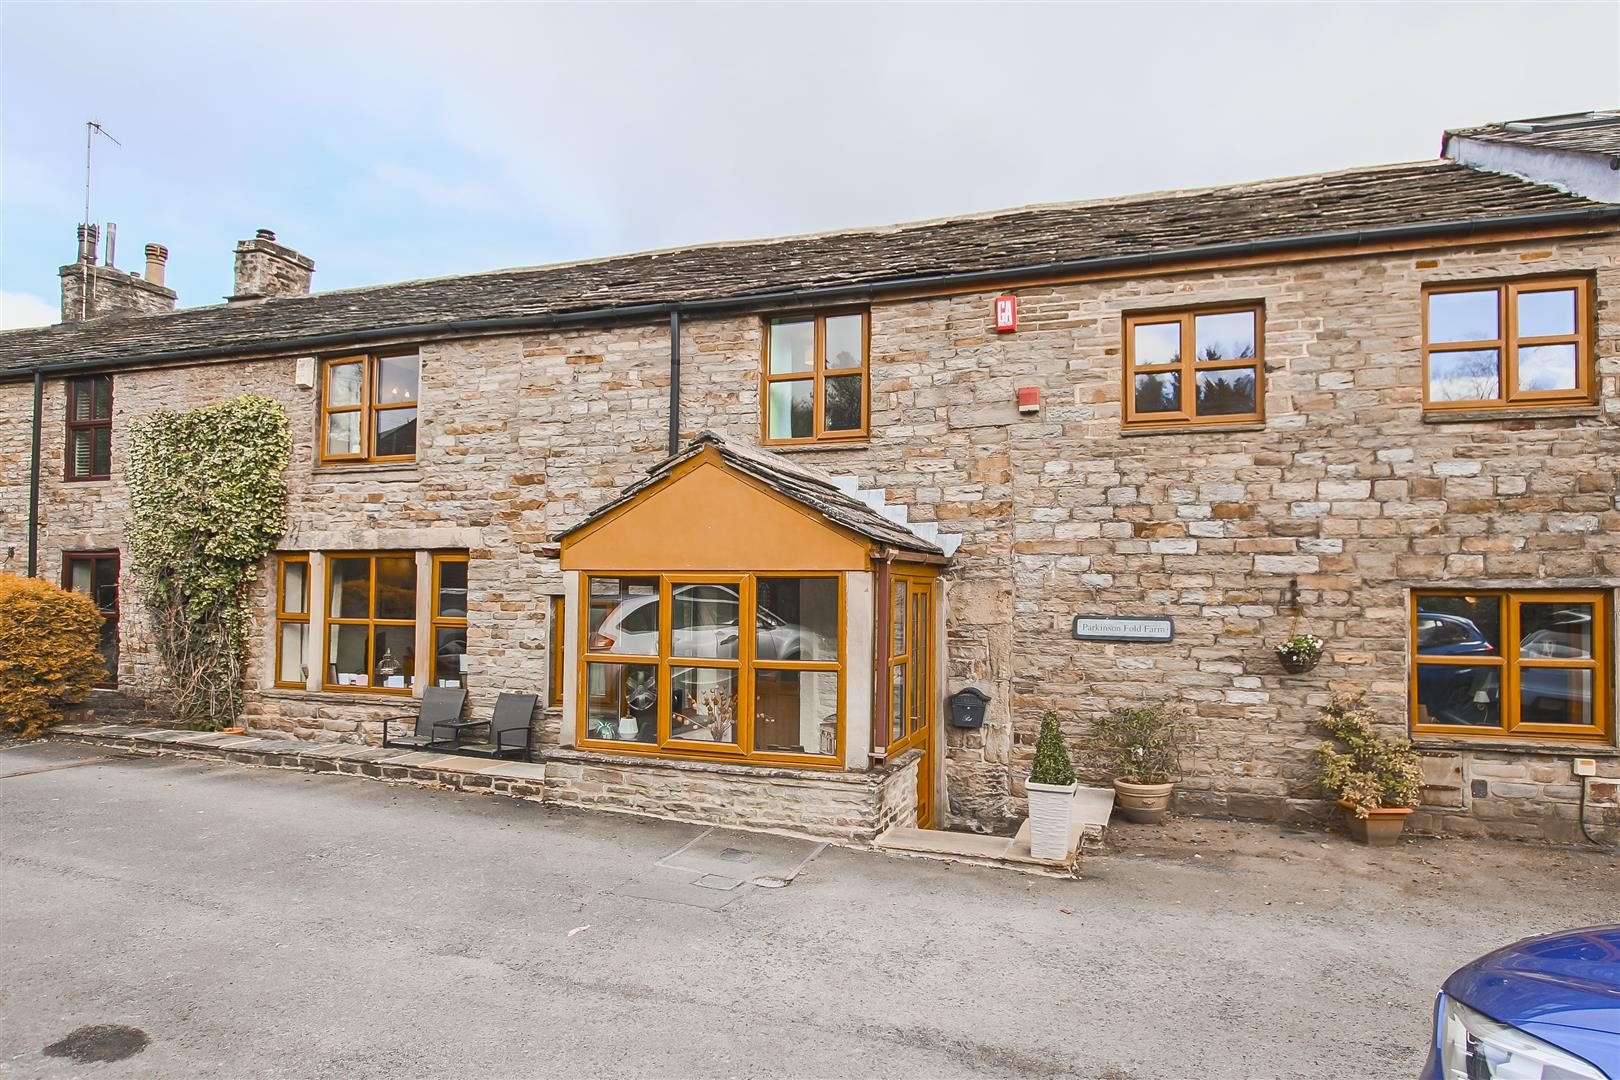 4 Bedroom Farmhouse For Sale - Image 43